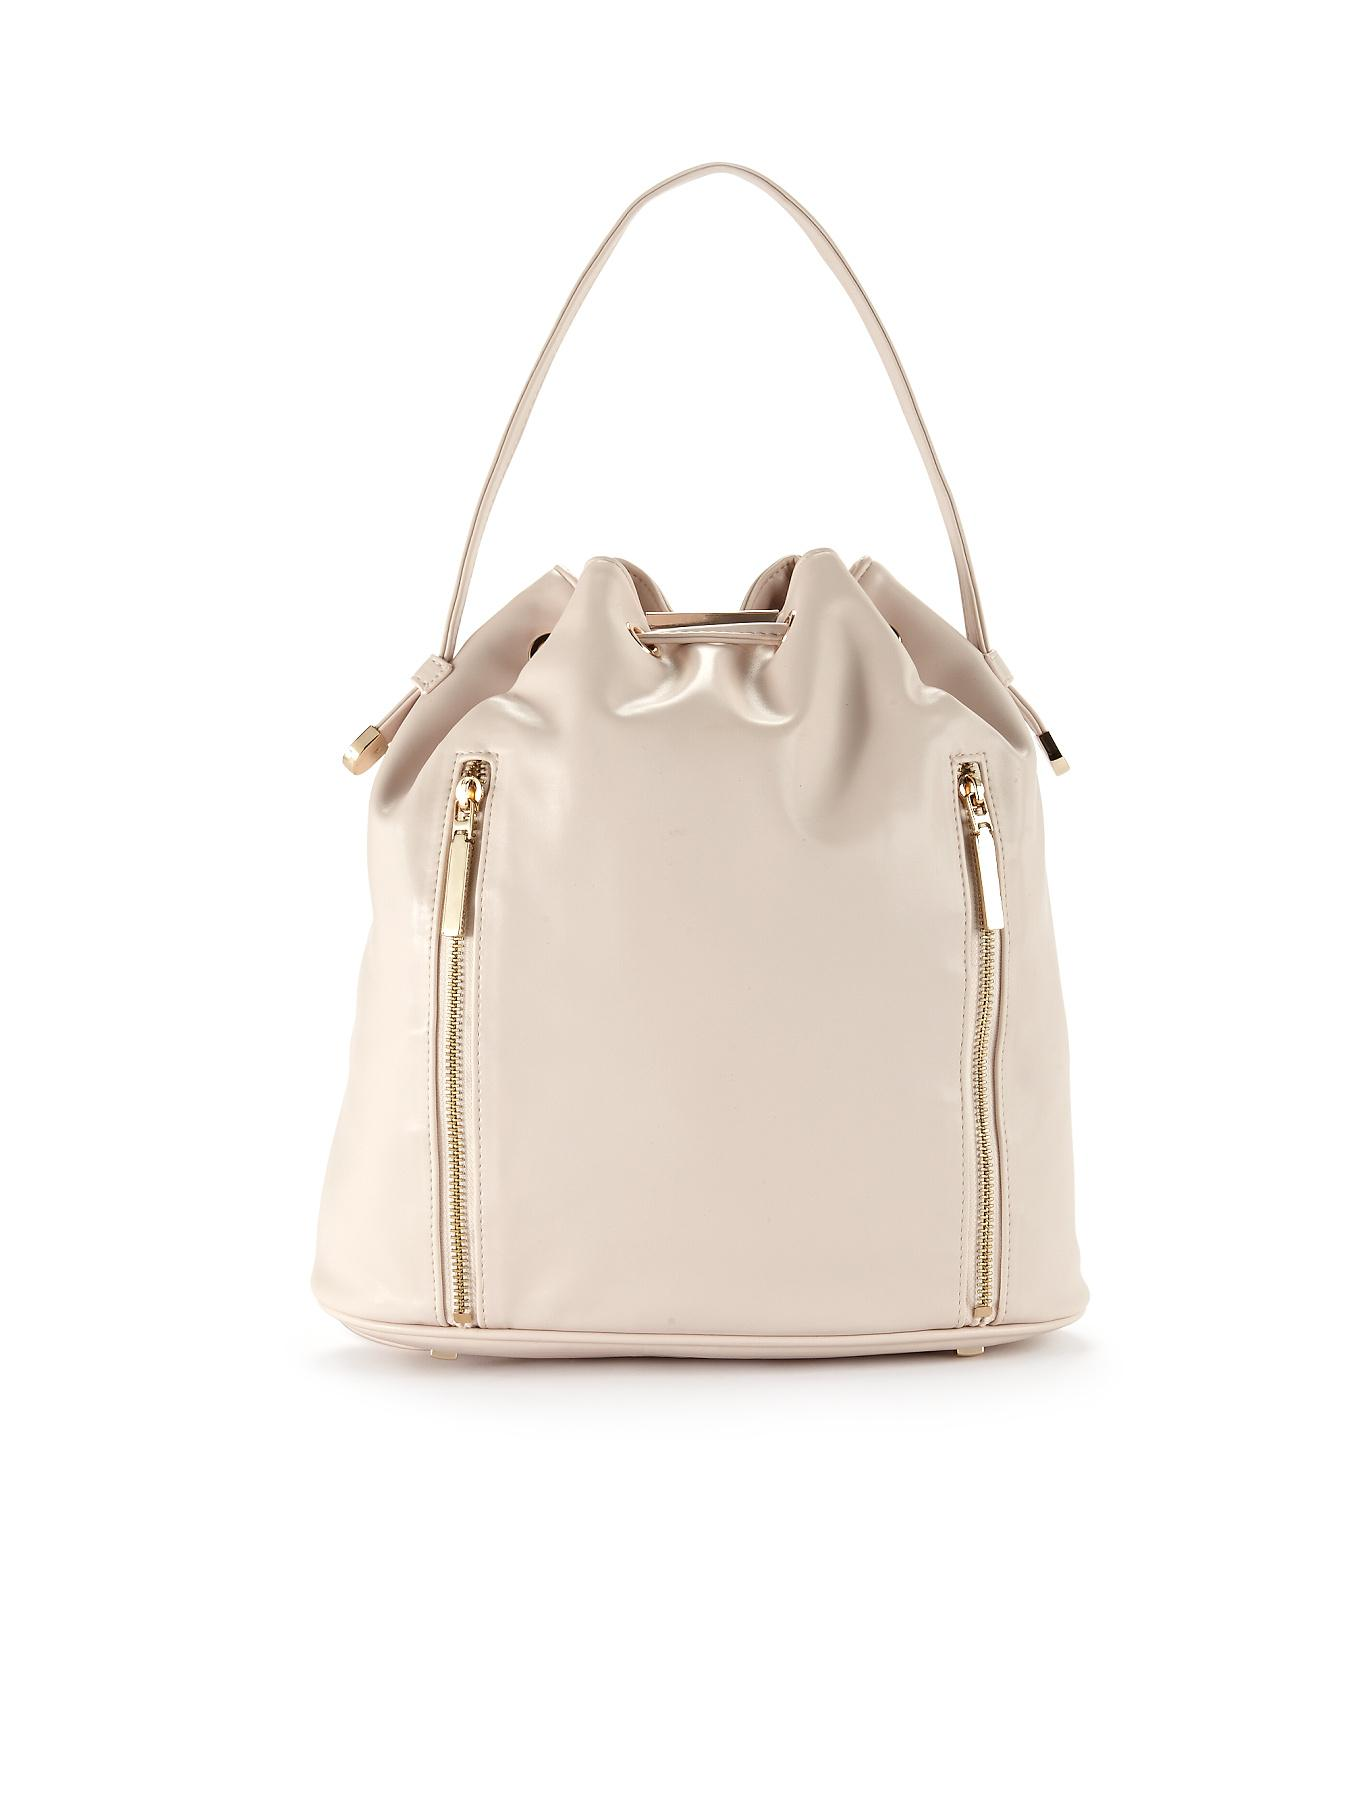 French Connection Duffle Bag - Nude, Nude